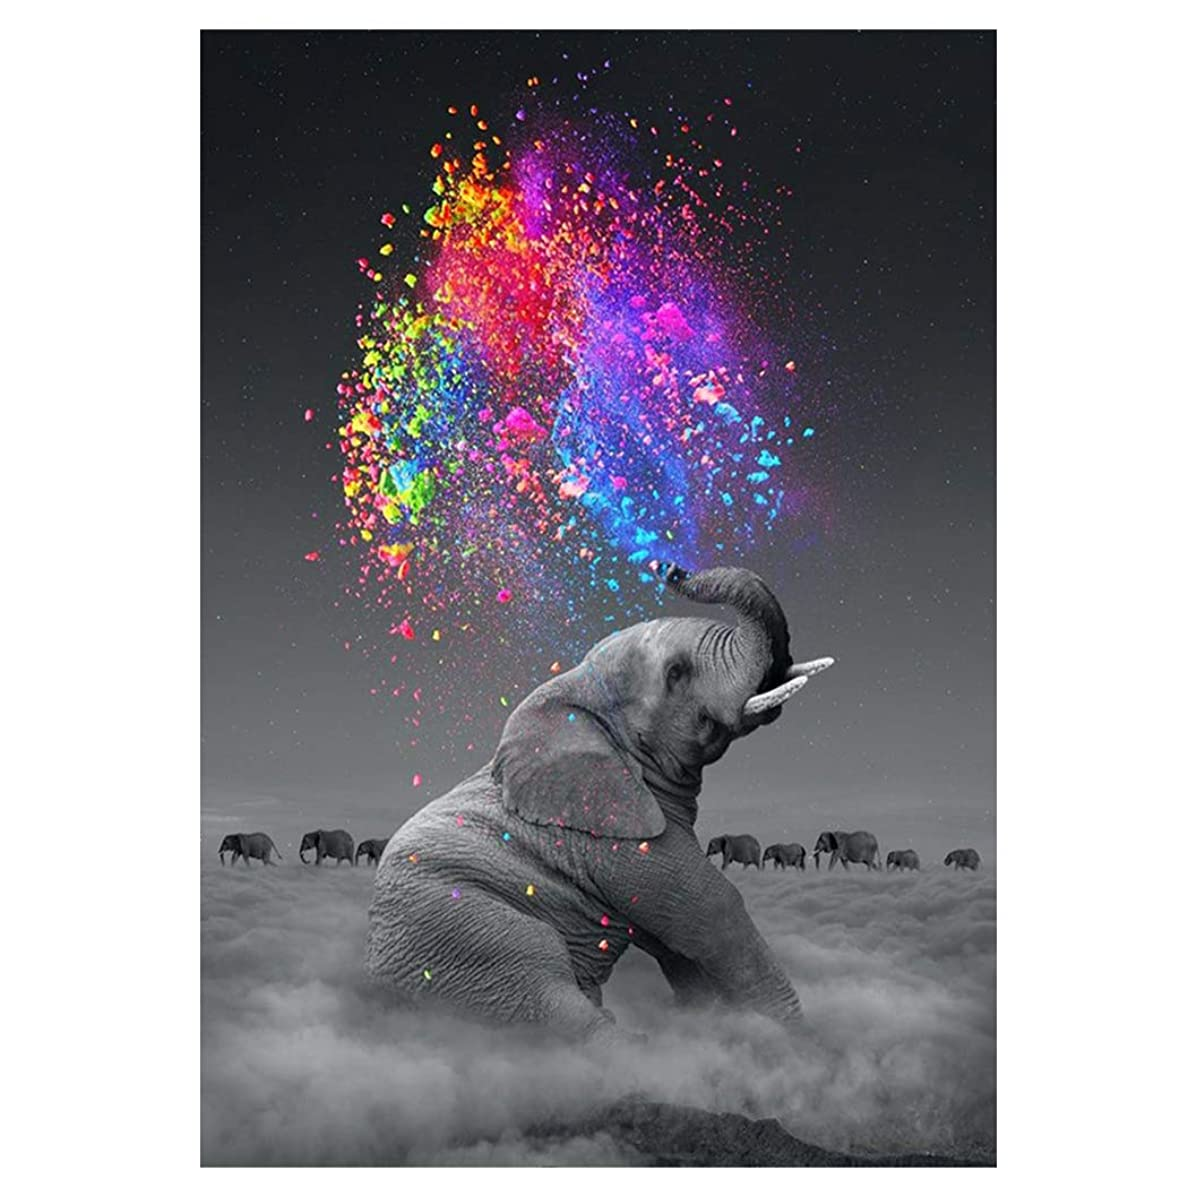 DIY 5D Diamond Painting by Number Kit for Adult Elephant Full Drill Diamond Painting Kit for Adults Home Wall Decor, Huge Size 14x20